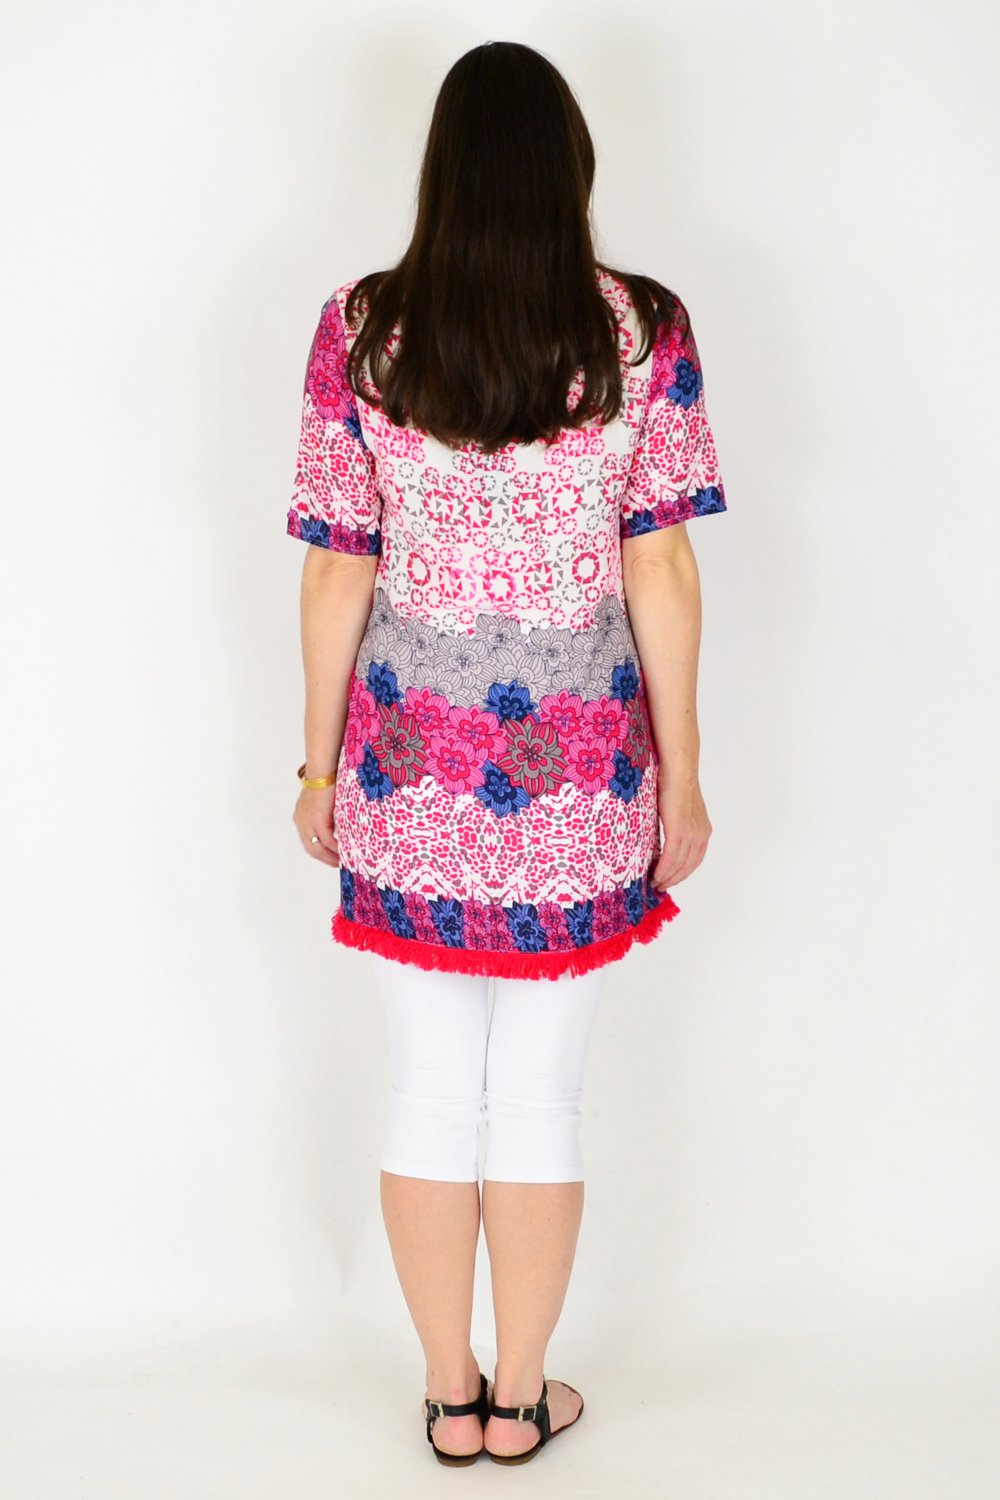 Phoebe Flower Tunic Top | I Love Tunics | Tunic Tops | Tunic | Tunic Dresses  | womens clothing online